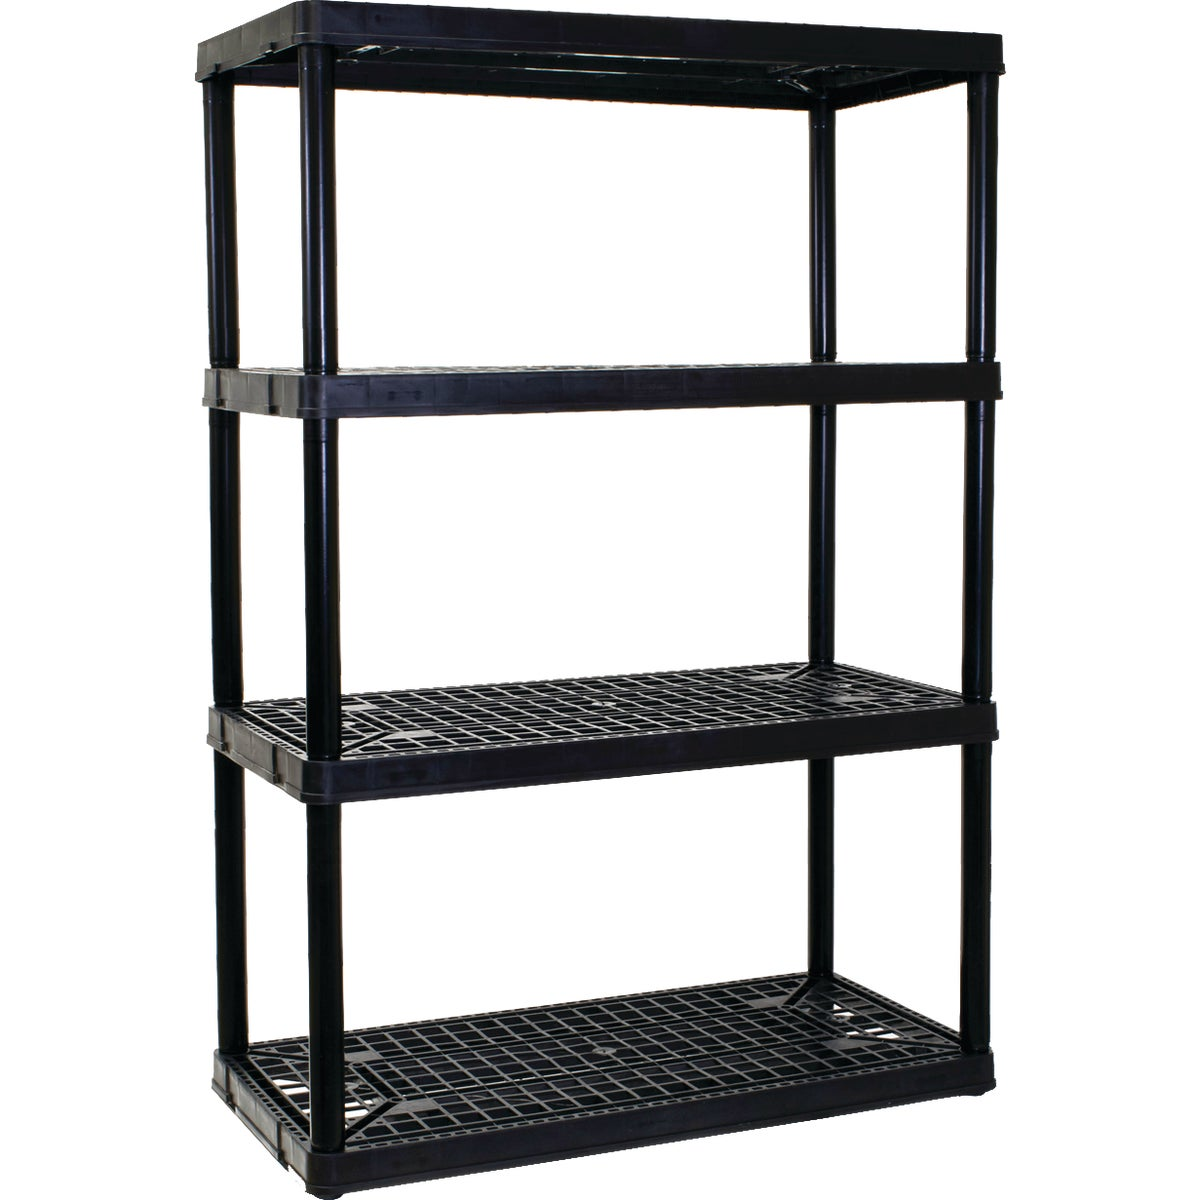 4 TIER 56X36X18 SHELF